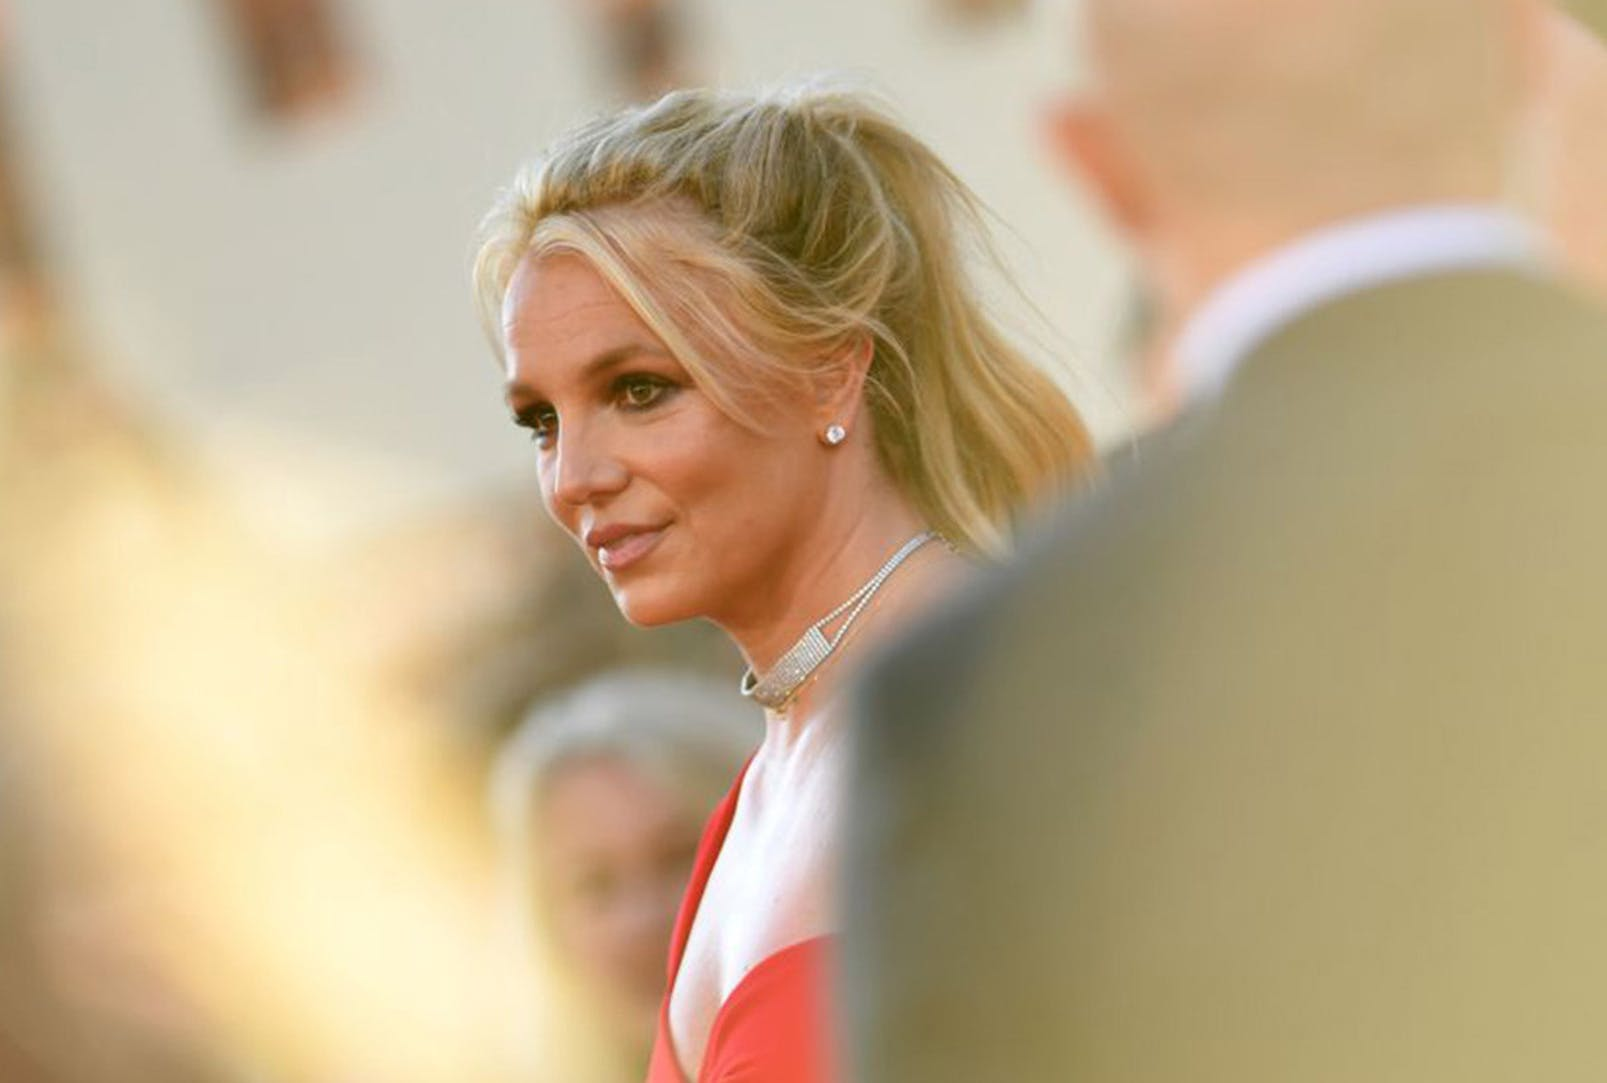 Britney loses bid to stop her father's control, as 12 year ordeal continues - A look at the conservatorship timeline